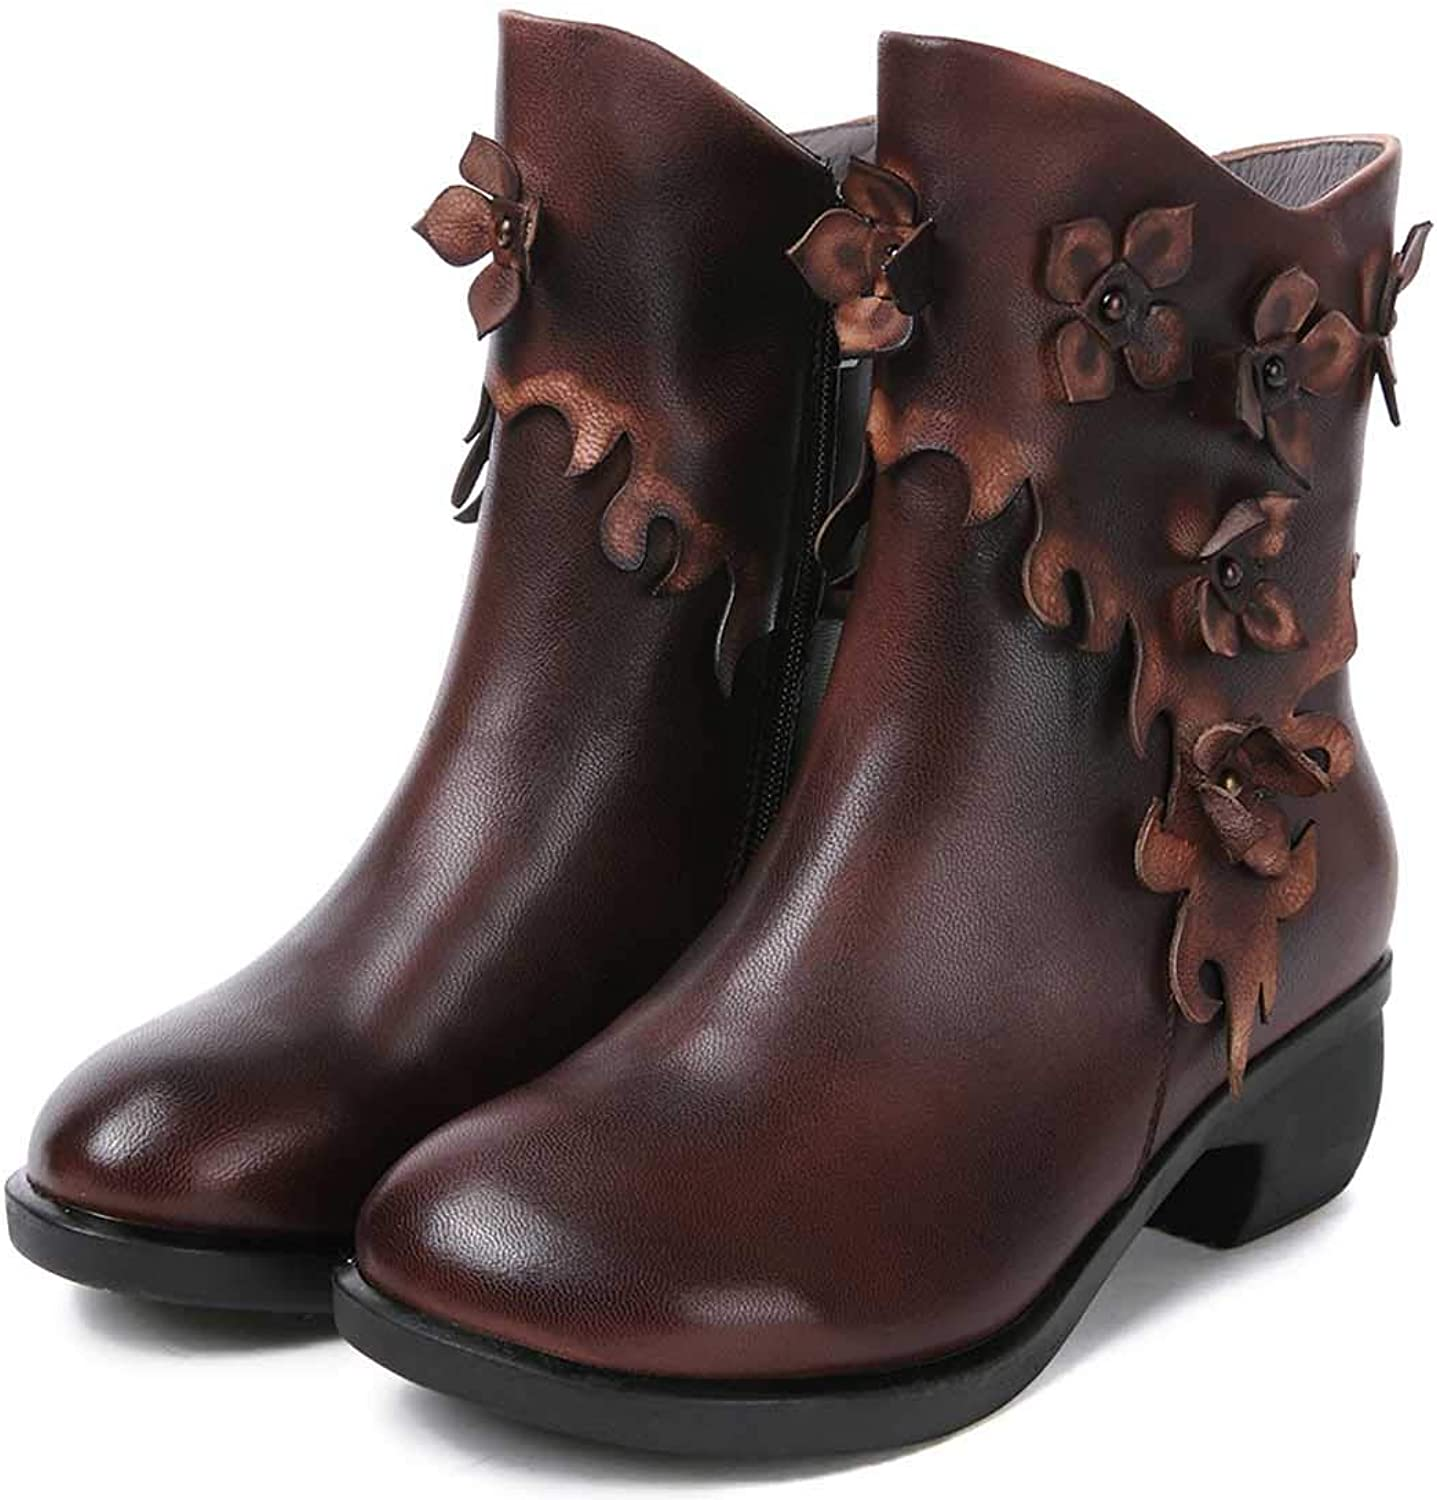 Leather Vintage Flower Decoration Women's Boots, Chelsea Low Heel Western Ankle Boots